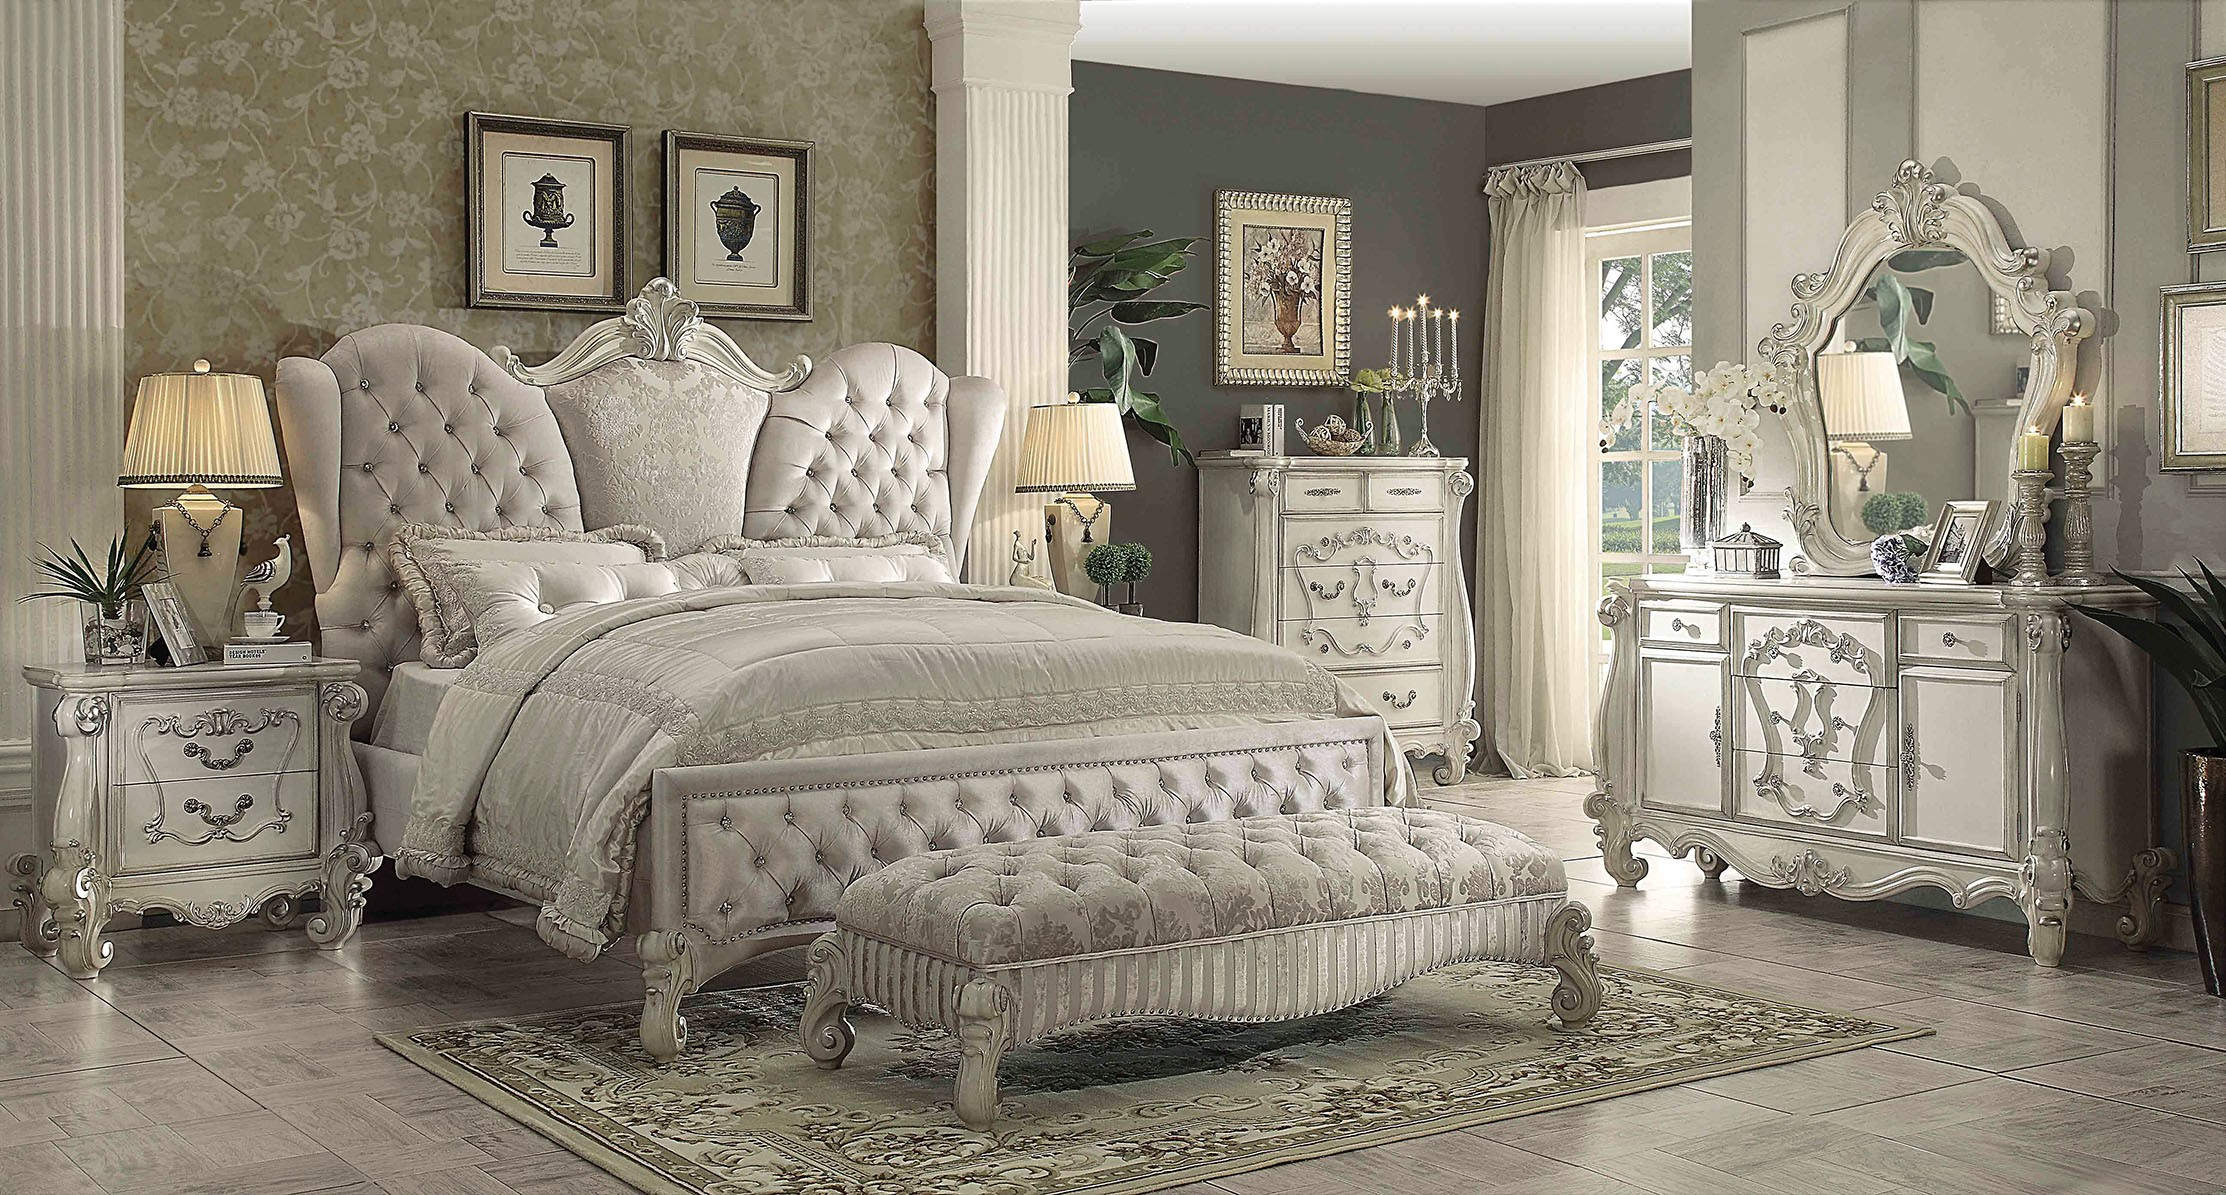 Acme Versailles Upholstered Bedroom Set in Ivory Velvet/Bone White